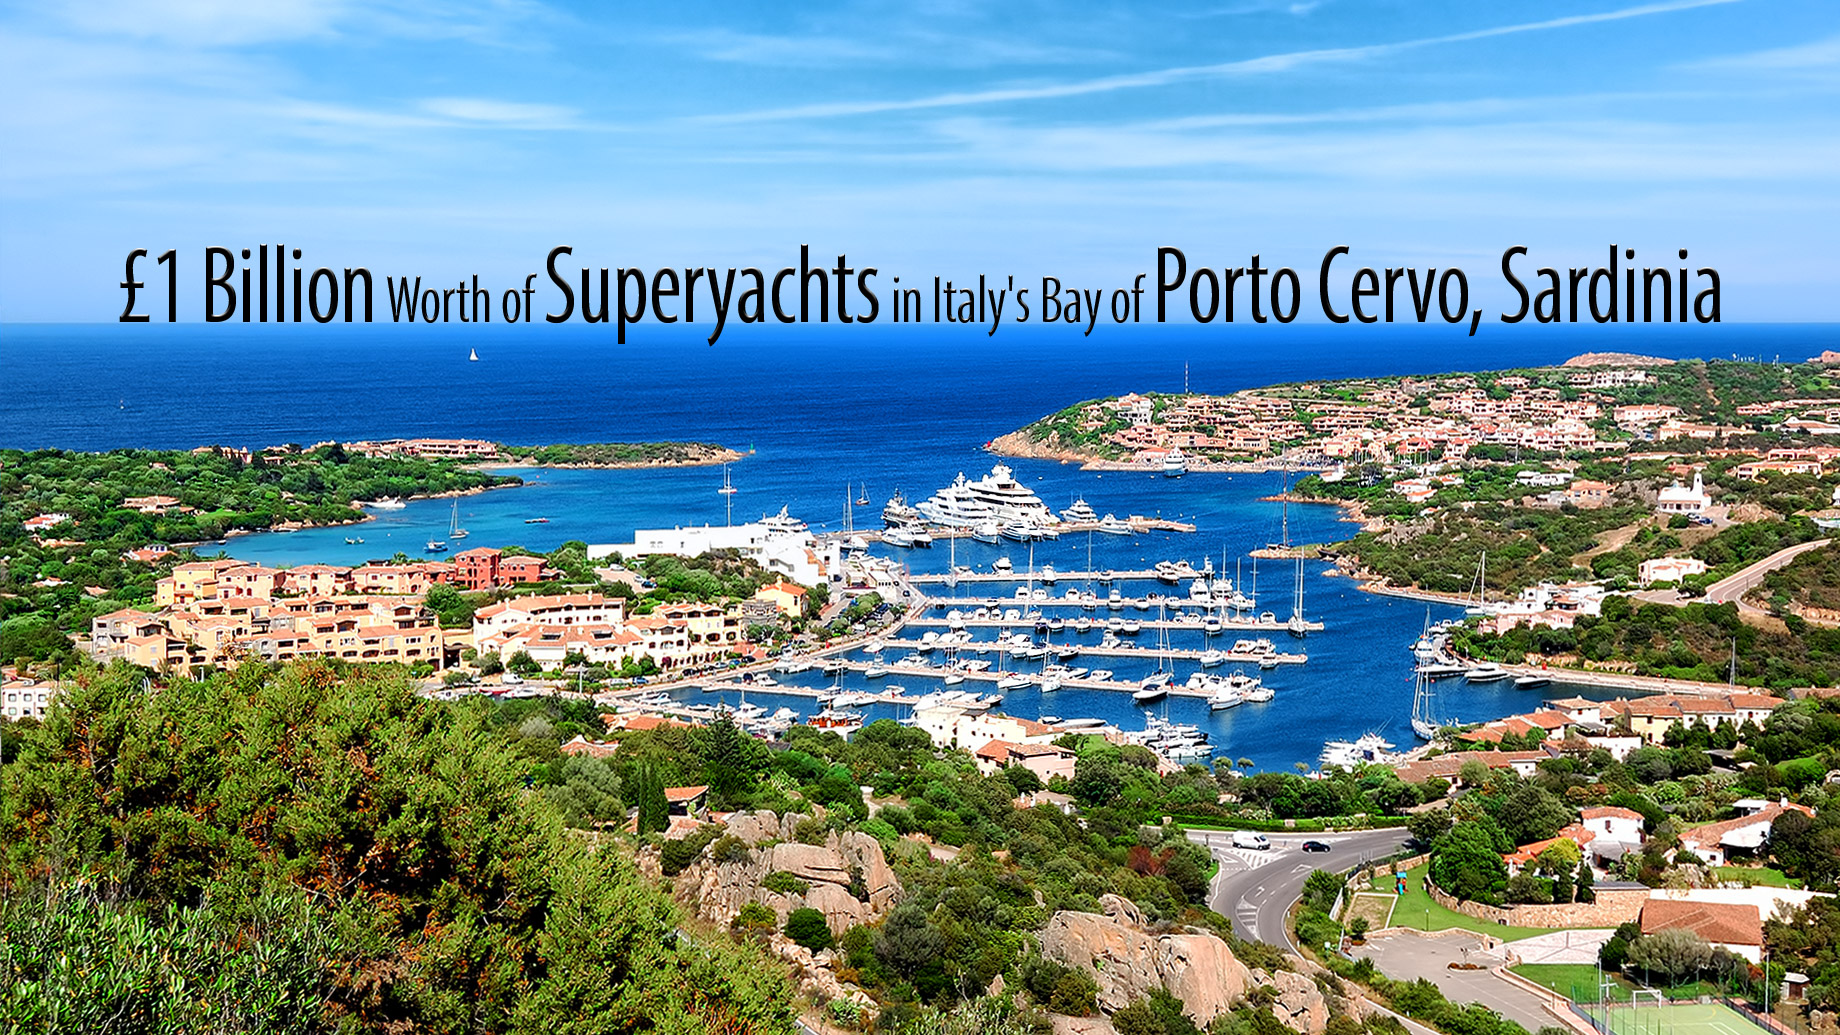 £1 Billion Worth of Superyachts in Italy's Bay of Porto Cervo, Sardinia